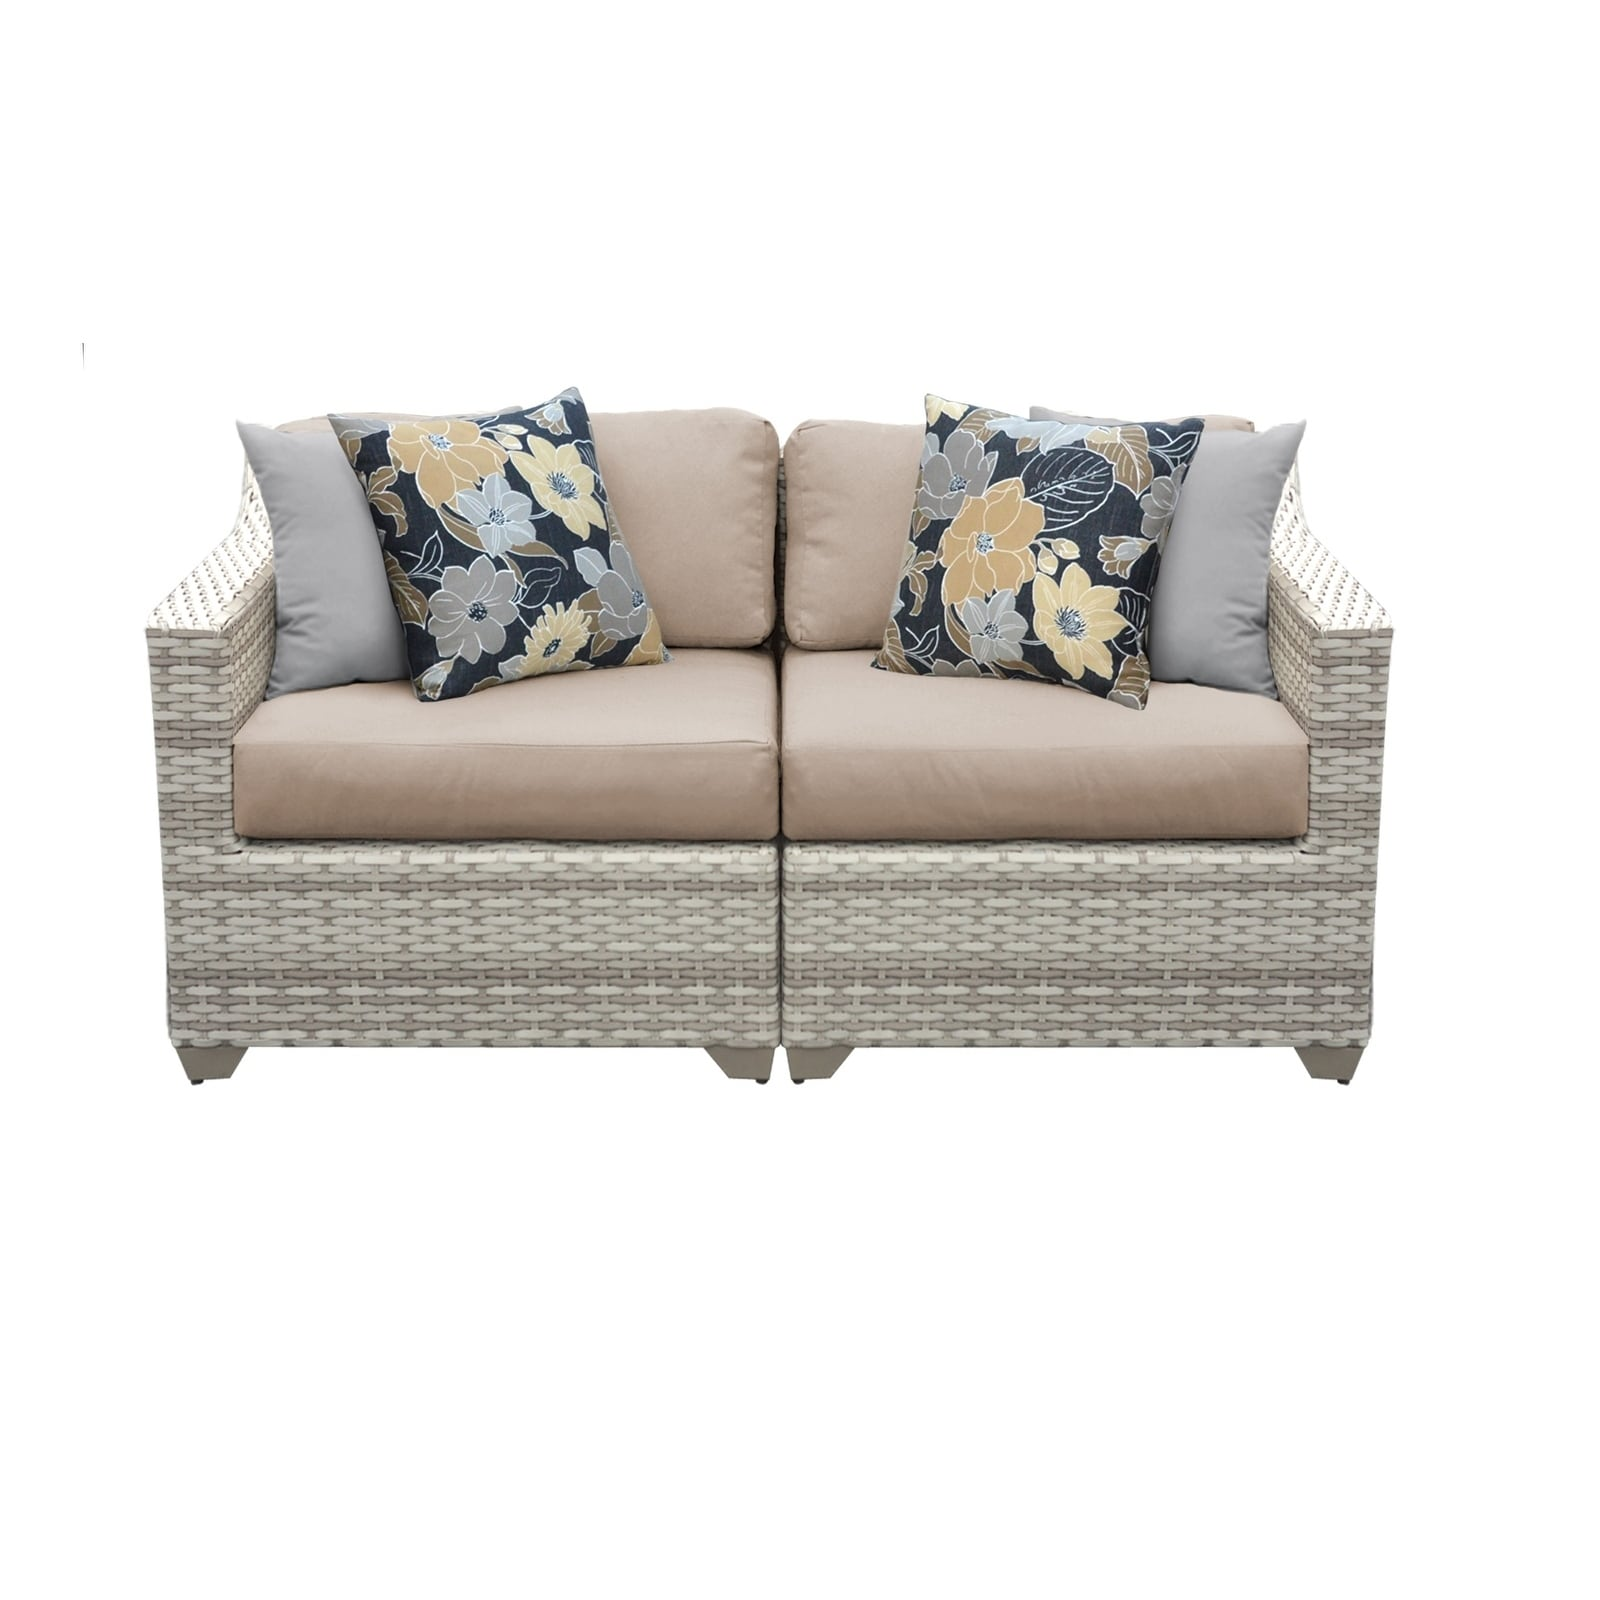 fairmont sofa laura ashley pull out bed kijiji shop 2 piece outdoor wicker patio furniture set 02a free shipping today overstock com 22908275